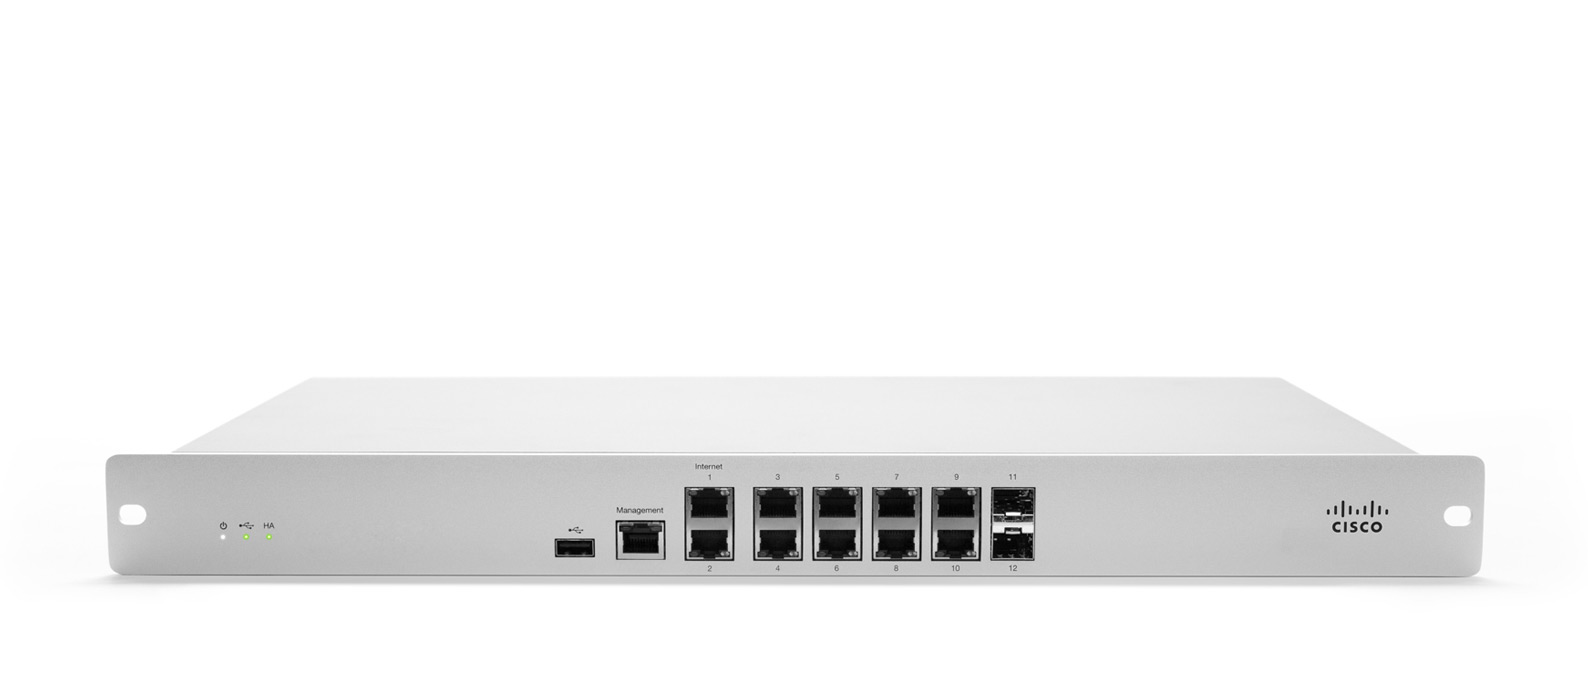 Cisco Meraki MX84 Security Appliance and SD-WAN